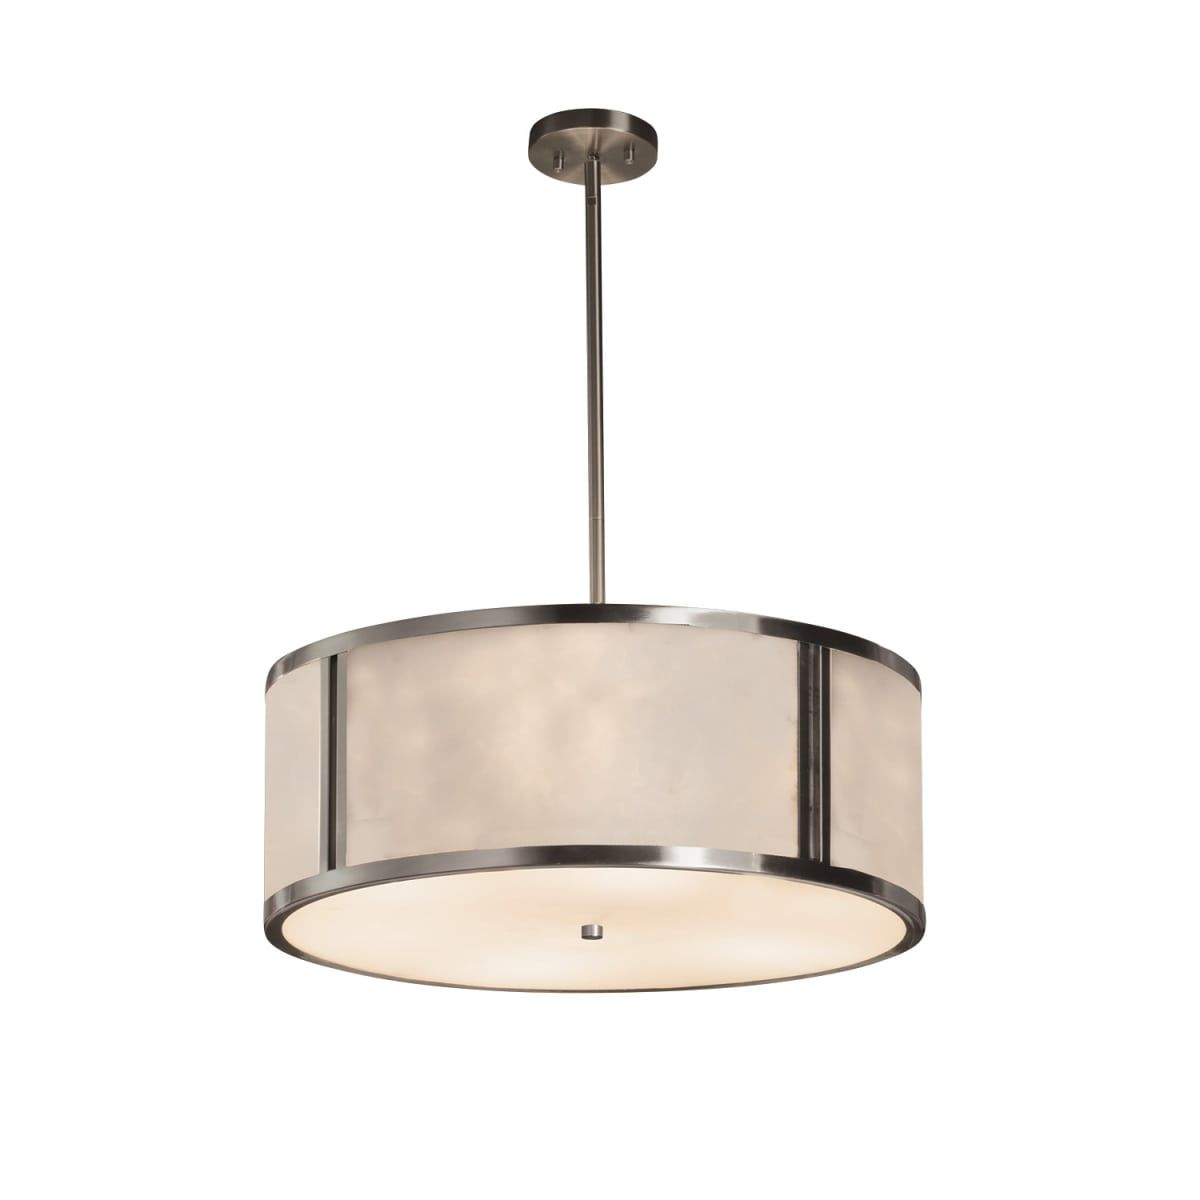 Justice Design Group Cld 9542 Drum Chandelier Drum Pendant